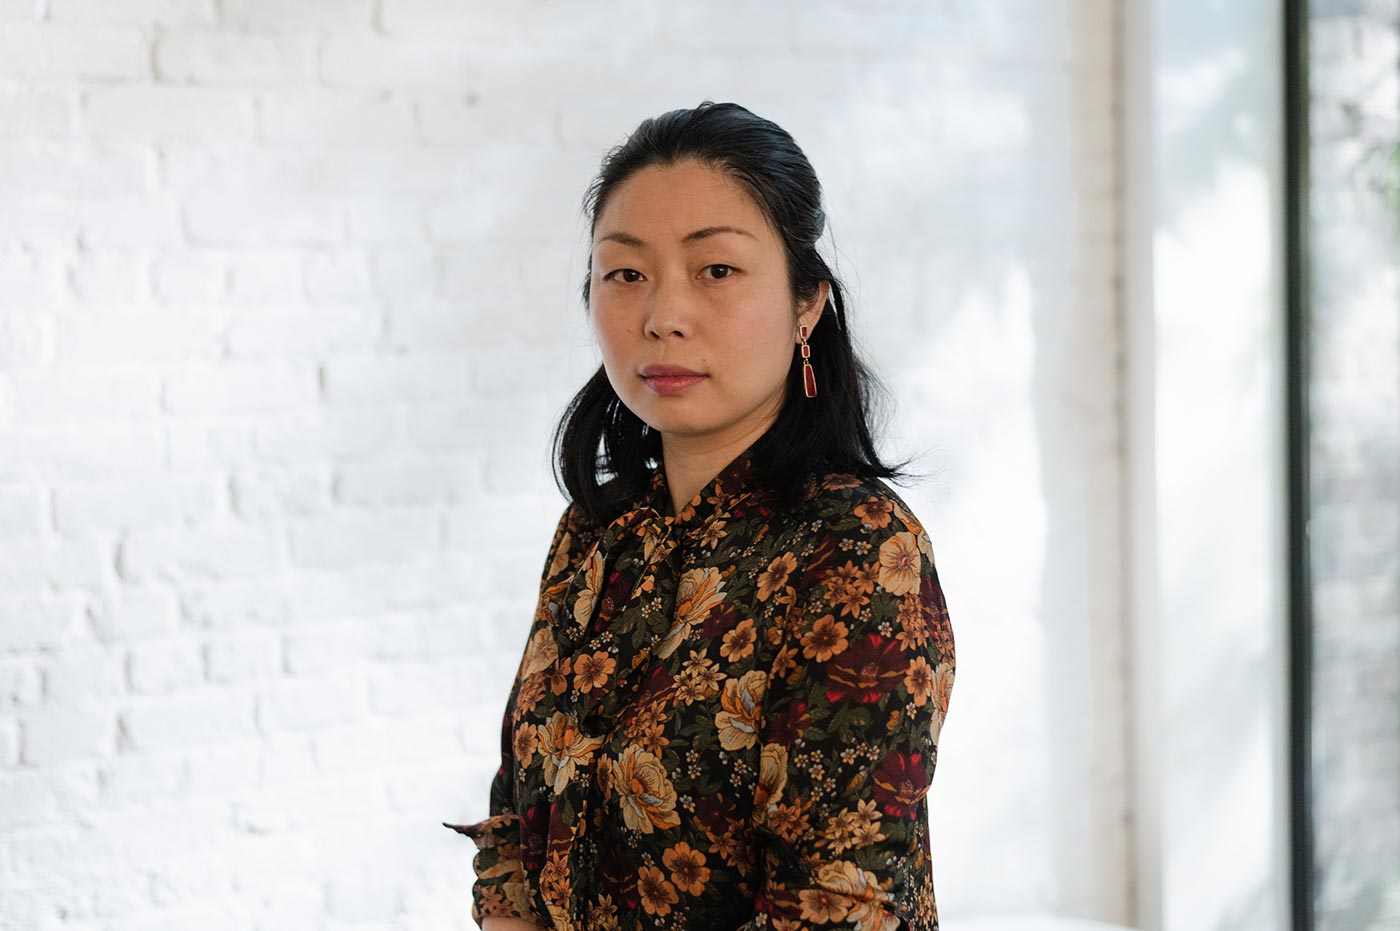 Nanfu Wang, in a floral shirt, standing in front of a white brick wall.